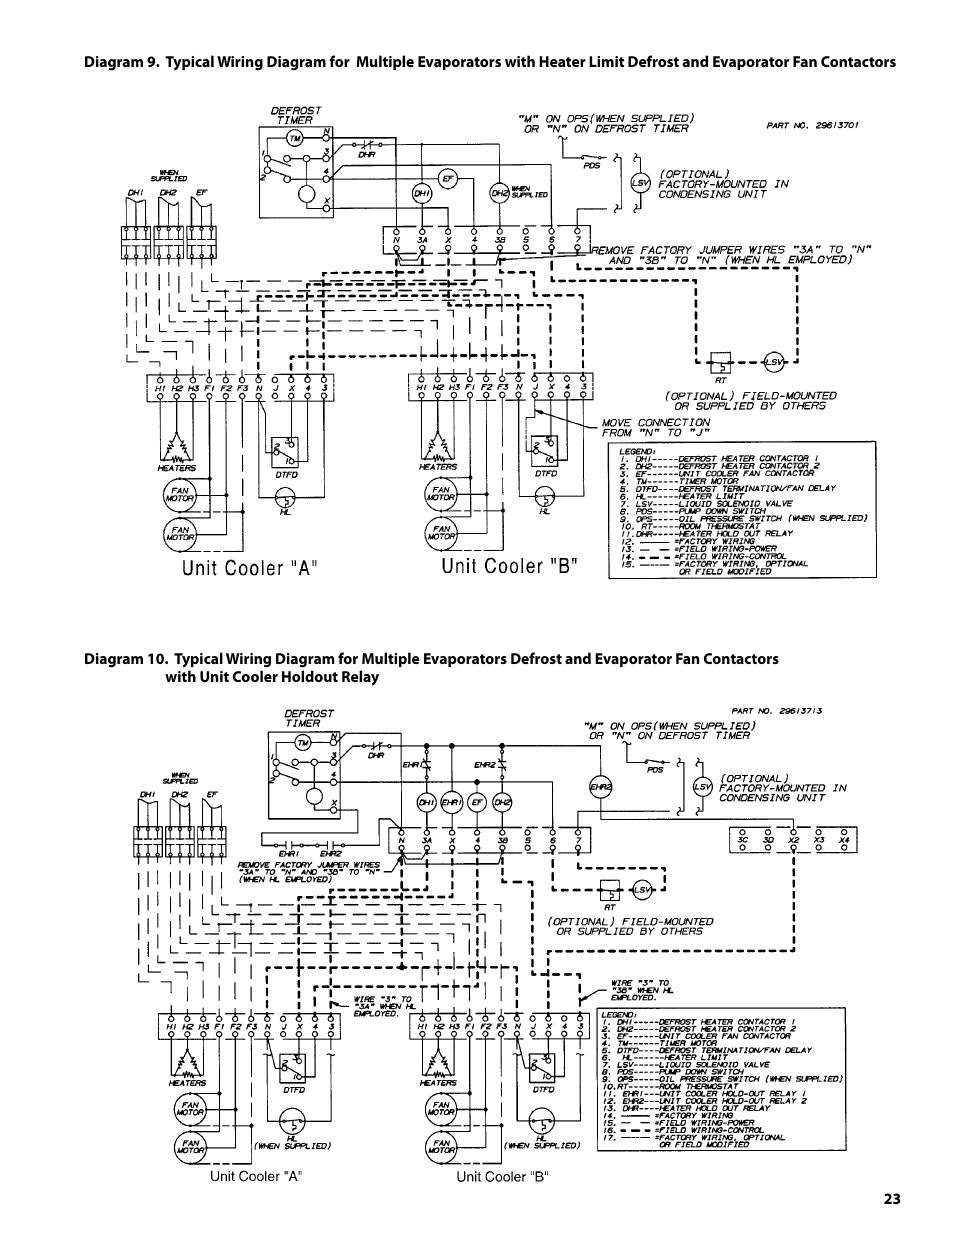 heatcraft walk in freezer wiring diagram Collection-heatcraft walk in freezer wiring diagram wiring diagram rh faceitsalon Copeland pressor Wiring Diagram 6-m